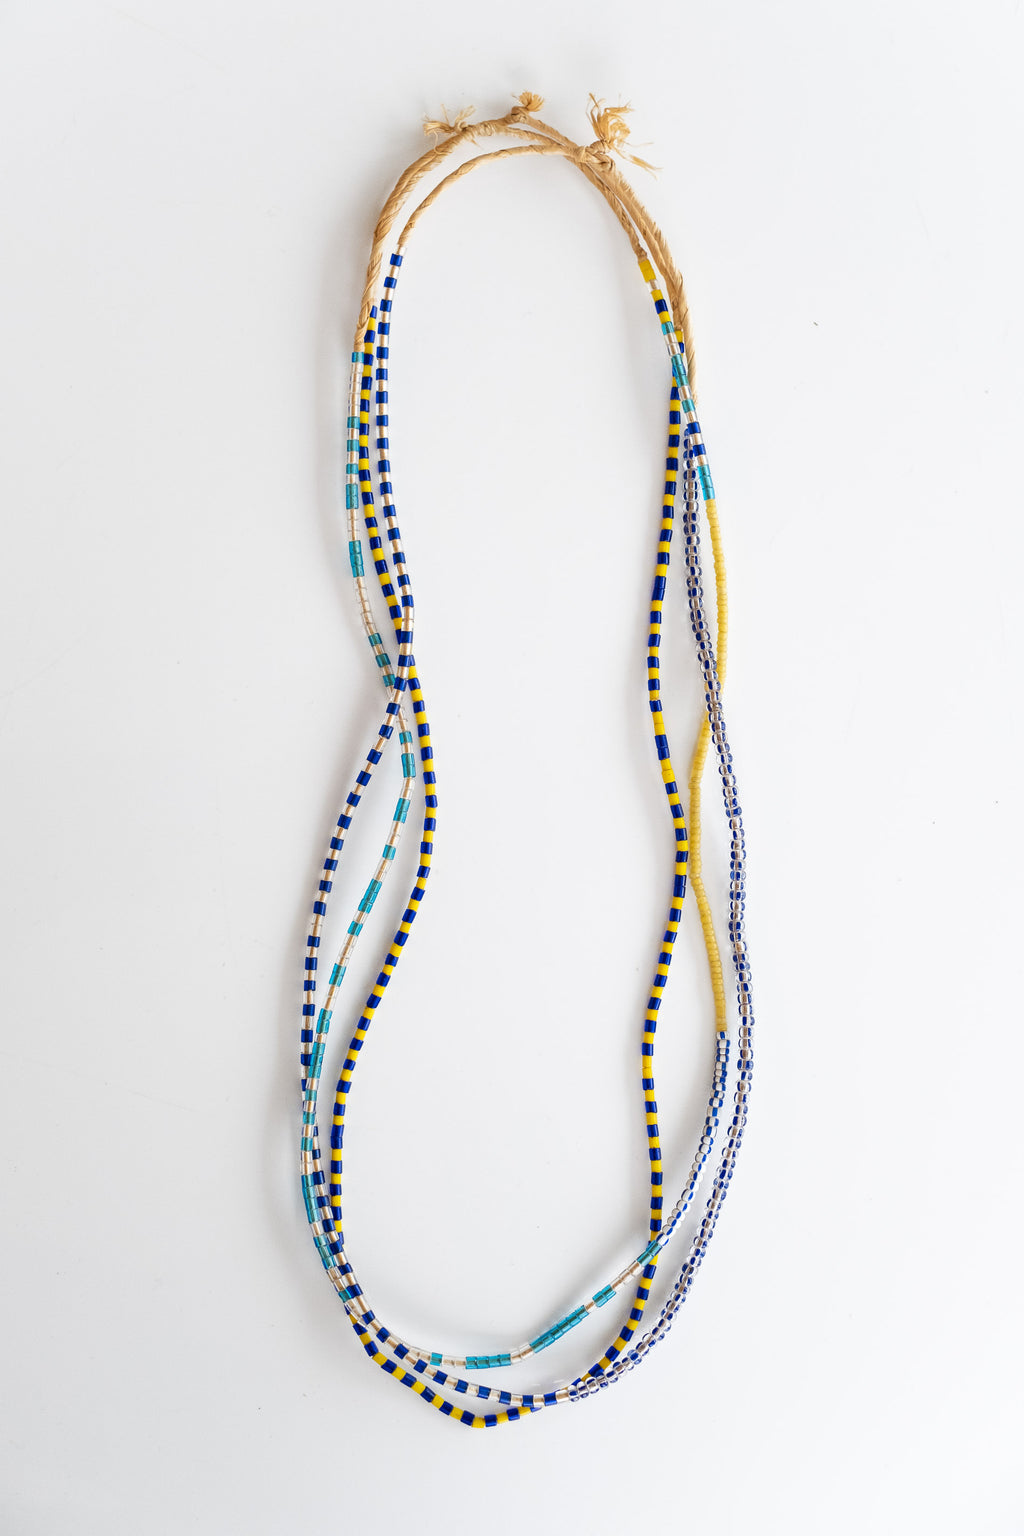 3-STRAND AFRICAN BEADS NO. 10